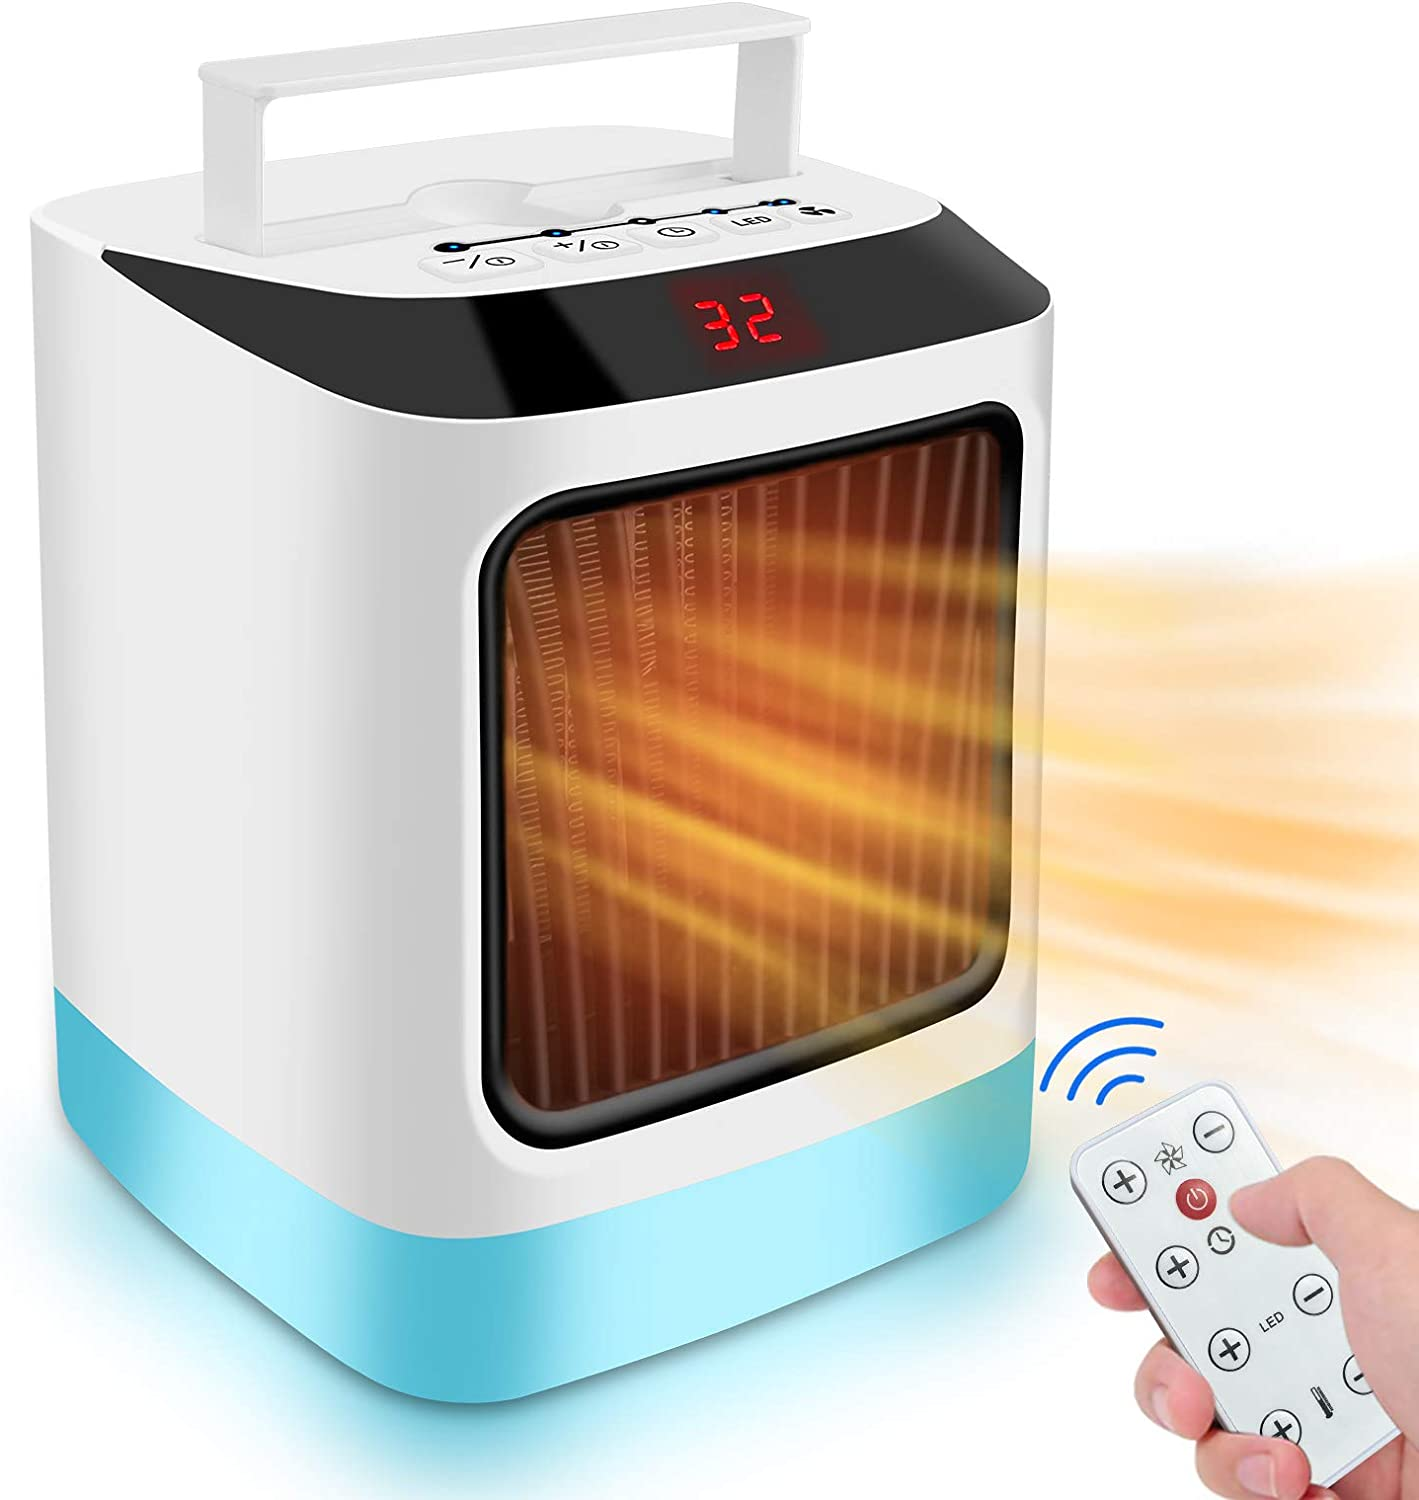 Portable Space Heater, Small Personal Warmer, Mini Desk Fan Electric Powered 800W Quick Heat Up Adjustable Thermostat Timing Setting Quiet for Office/ Home